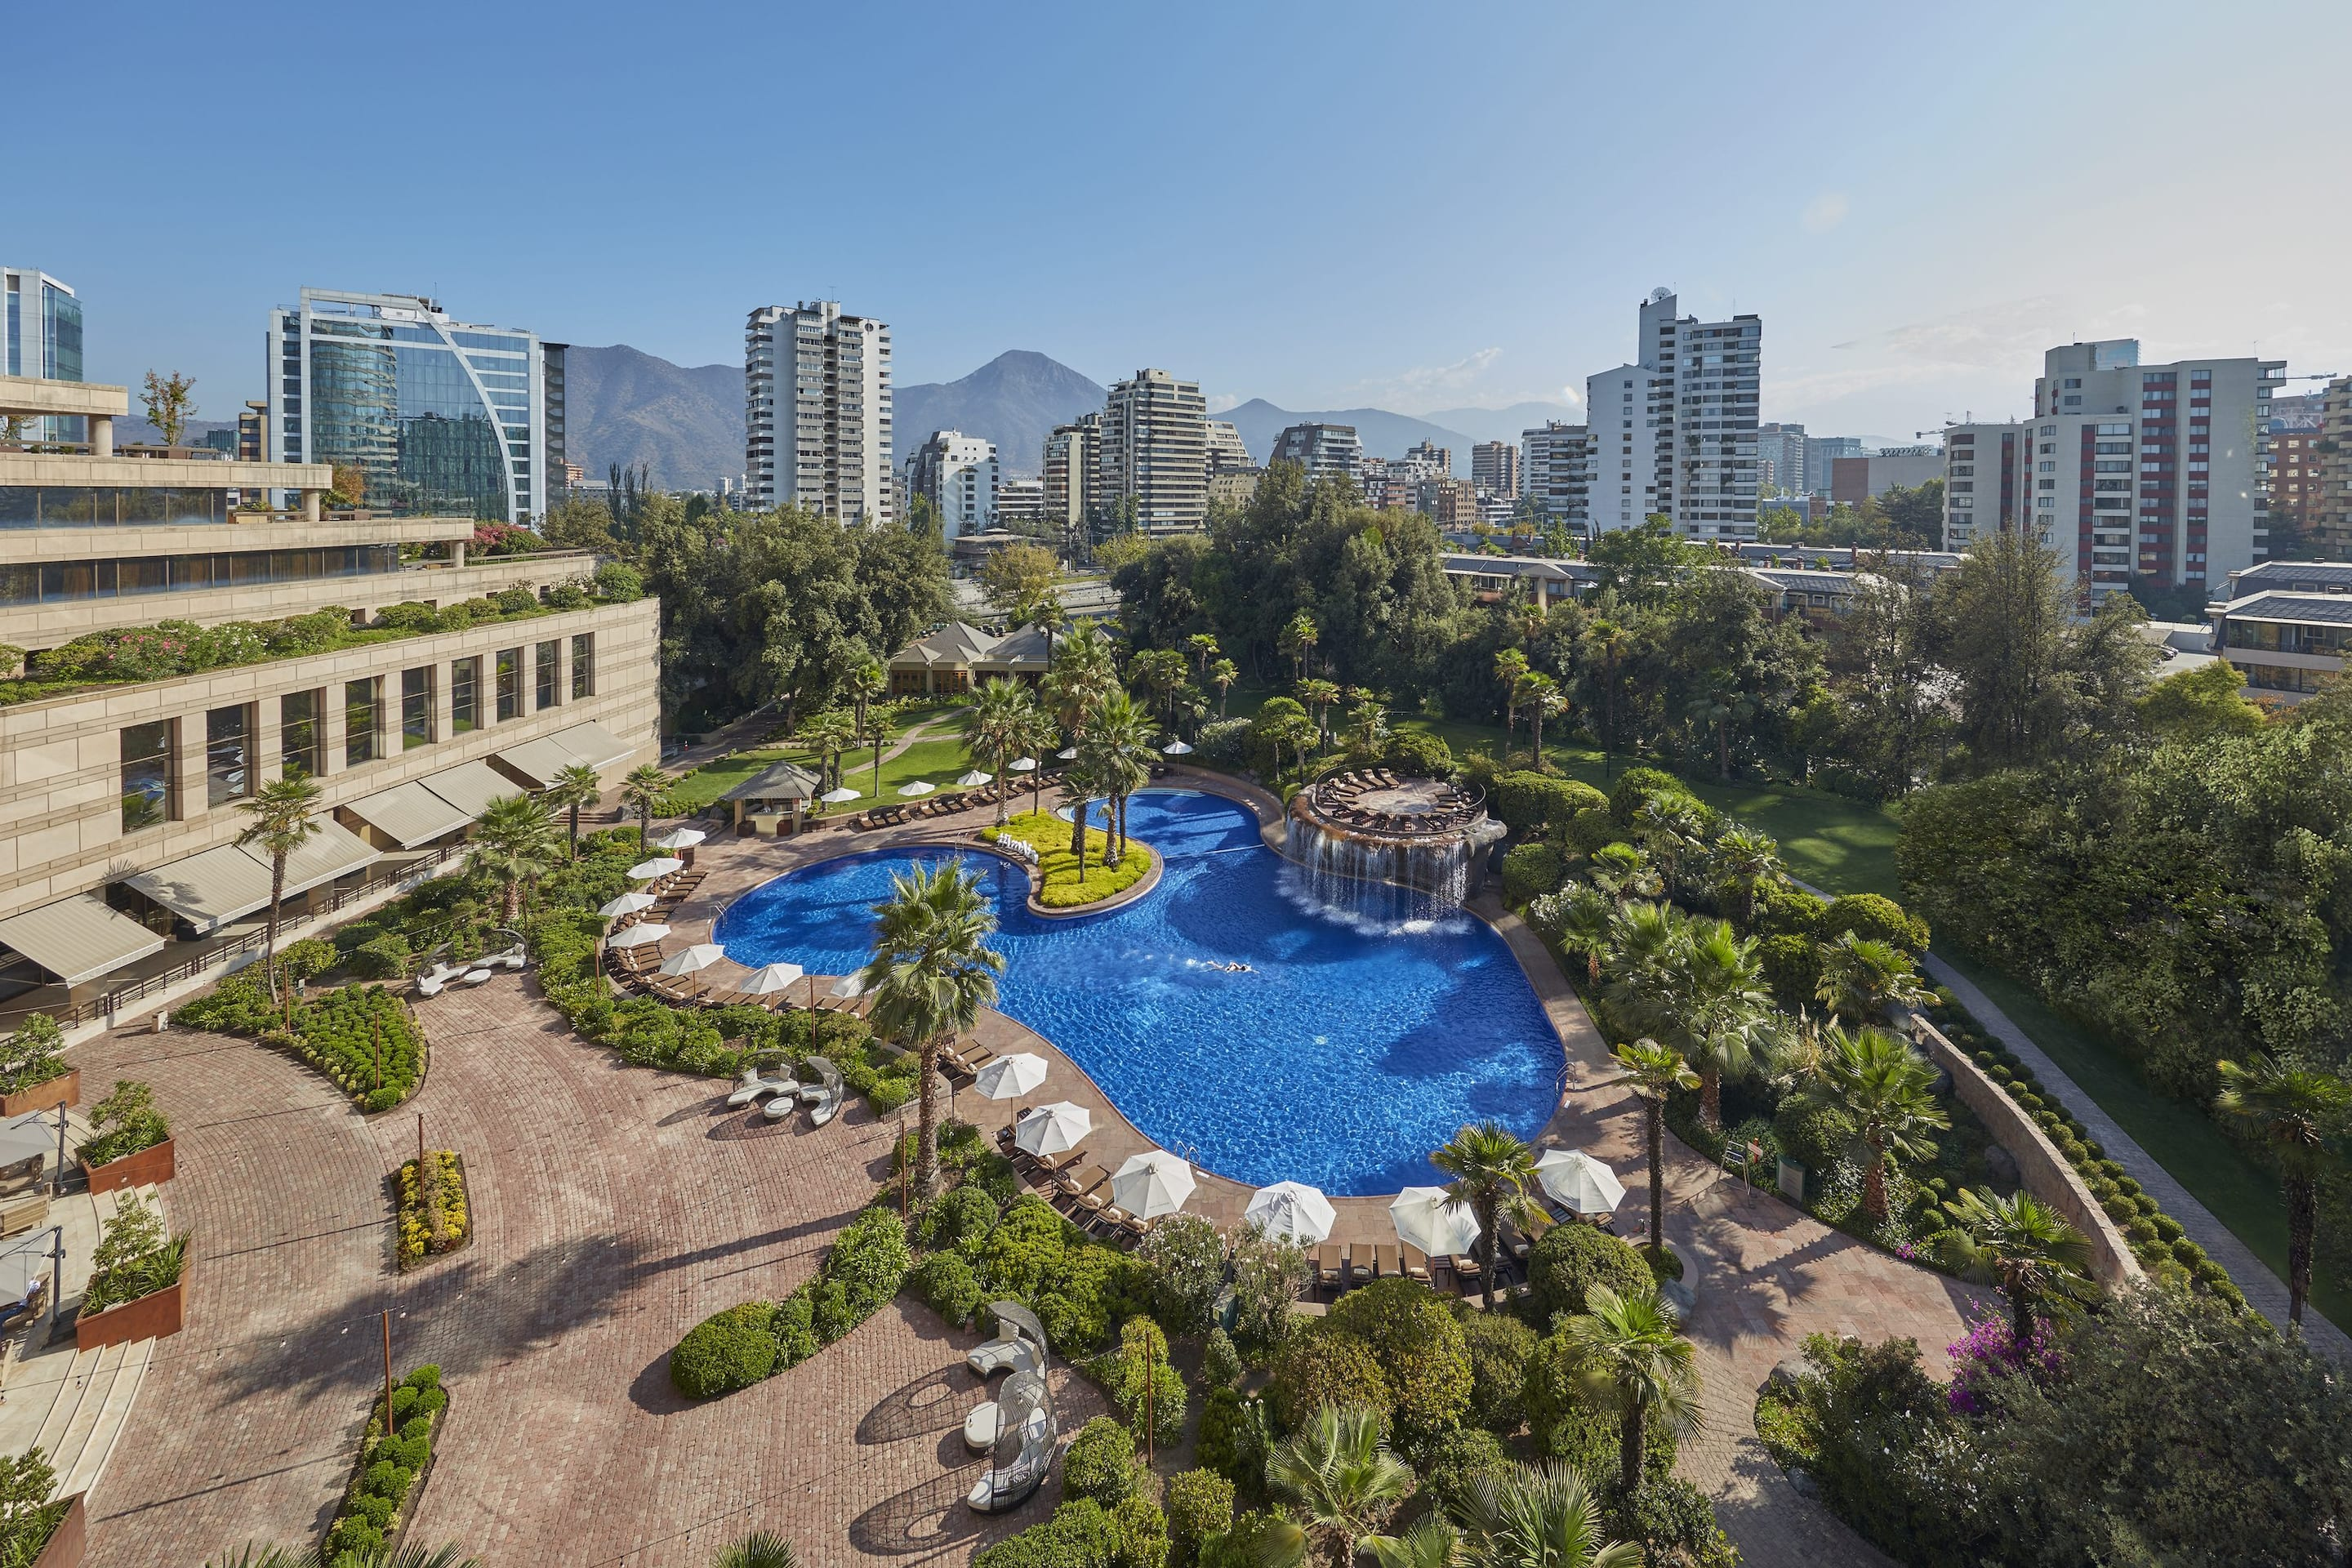 Outdoor pool and aerial view of Santiago with the skyline in the background